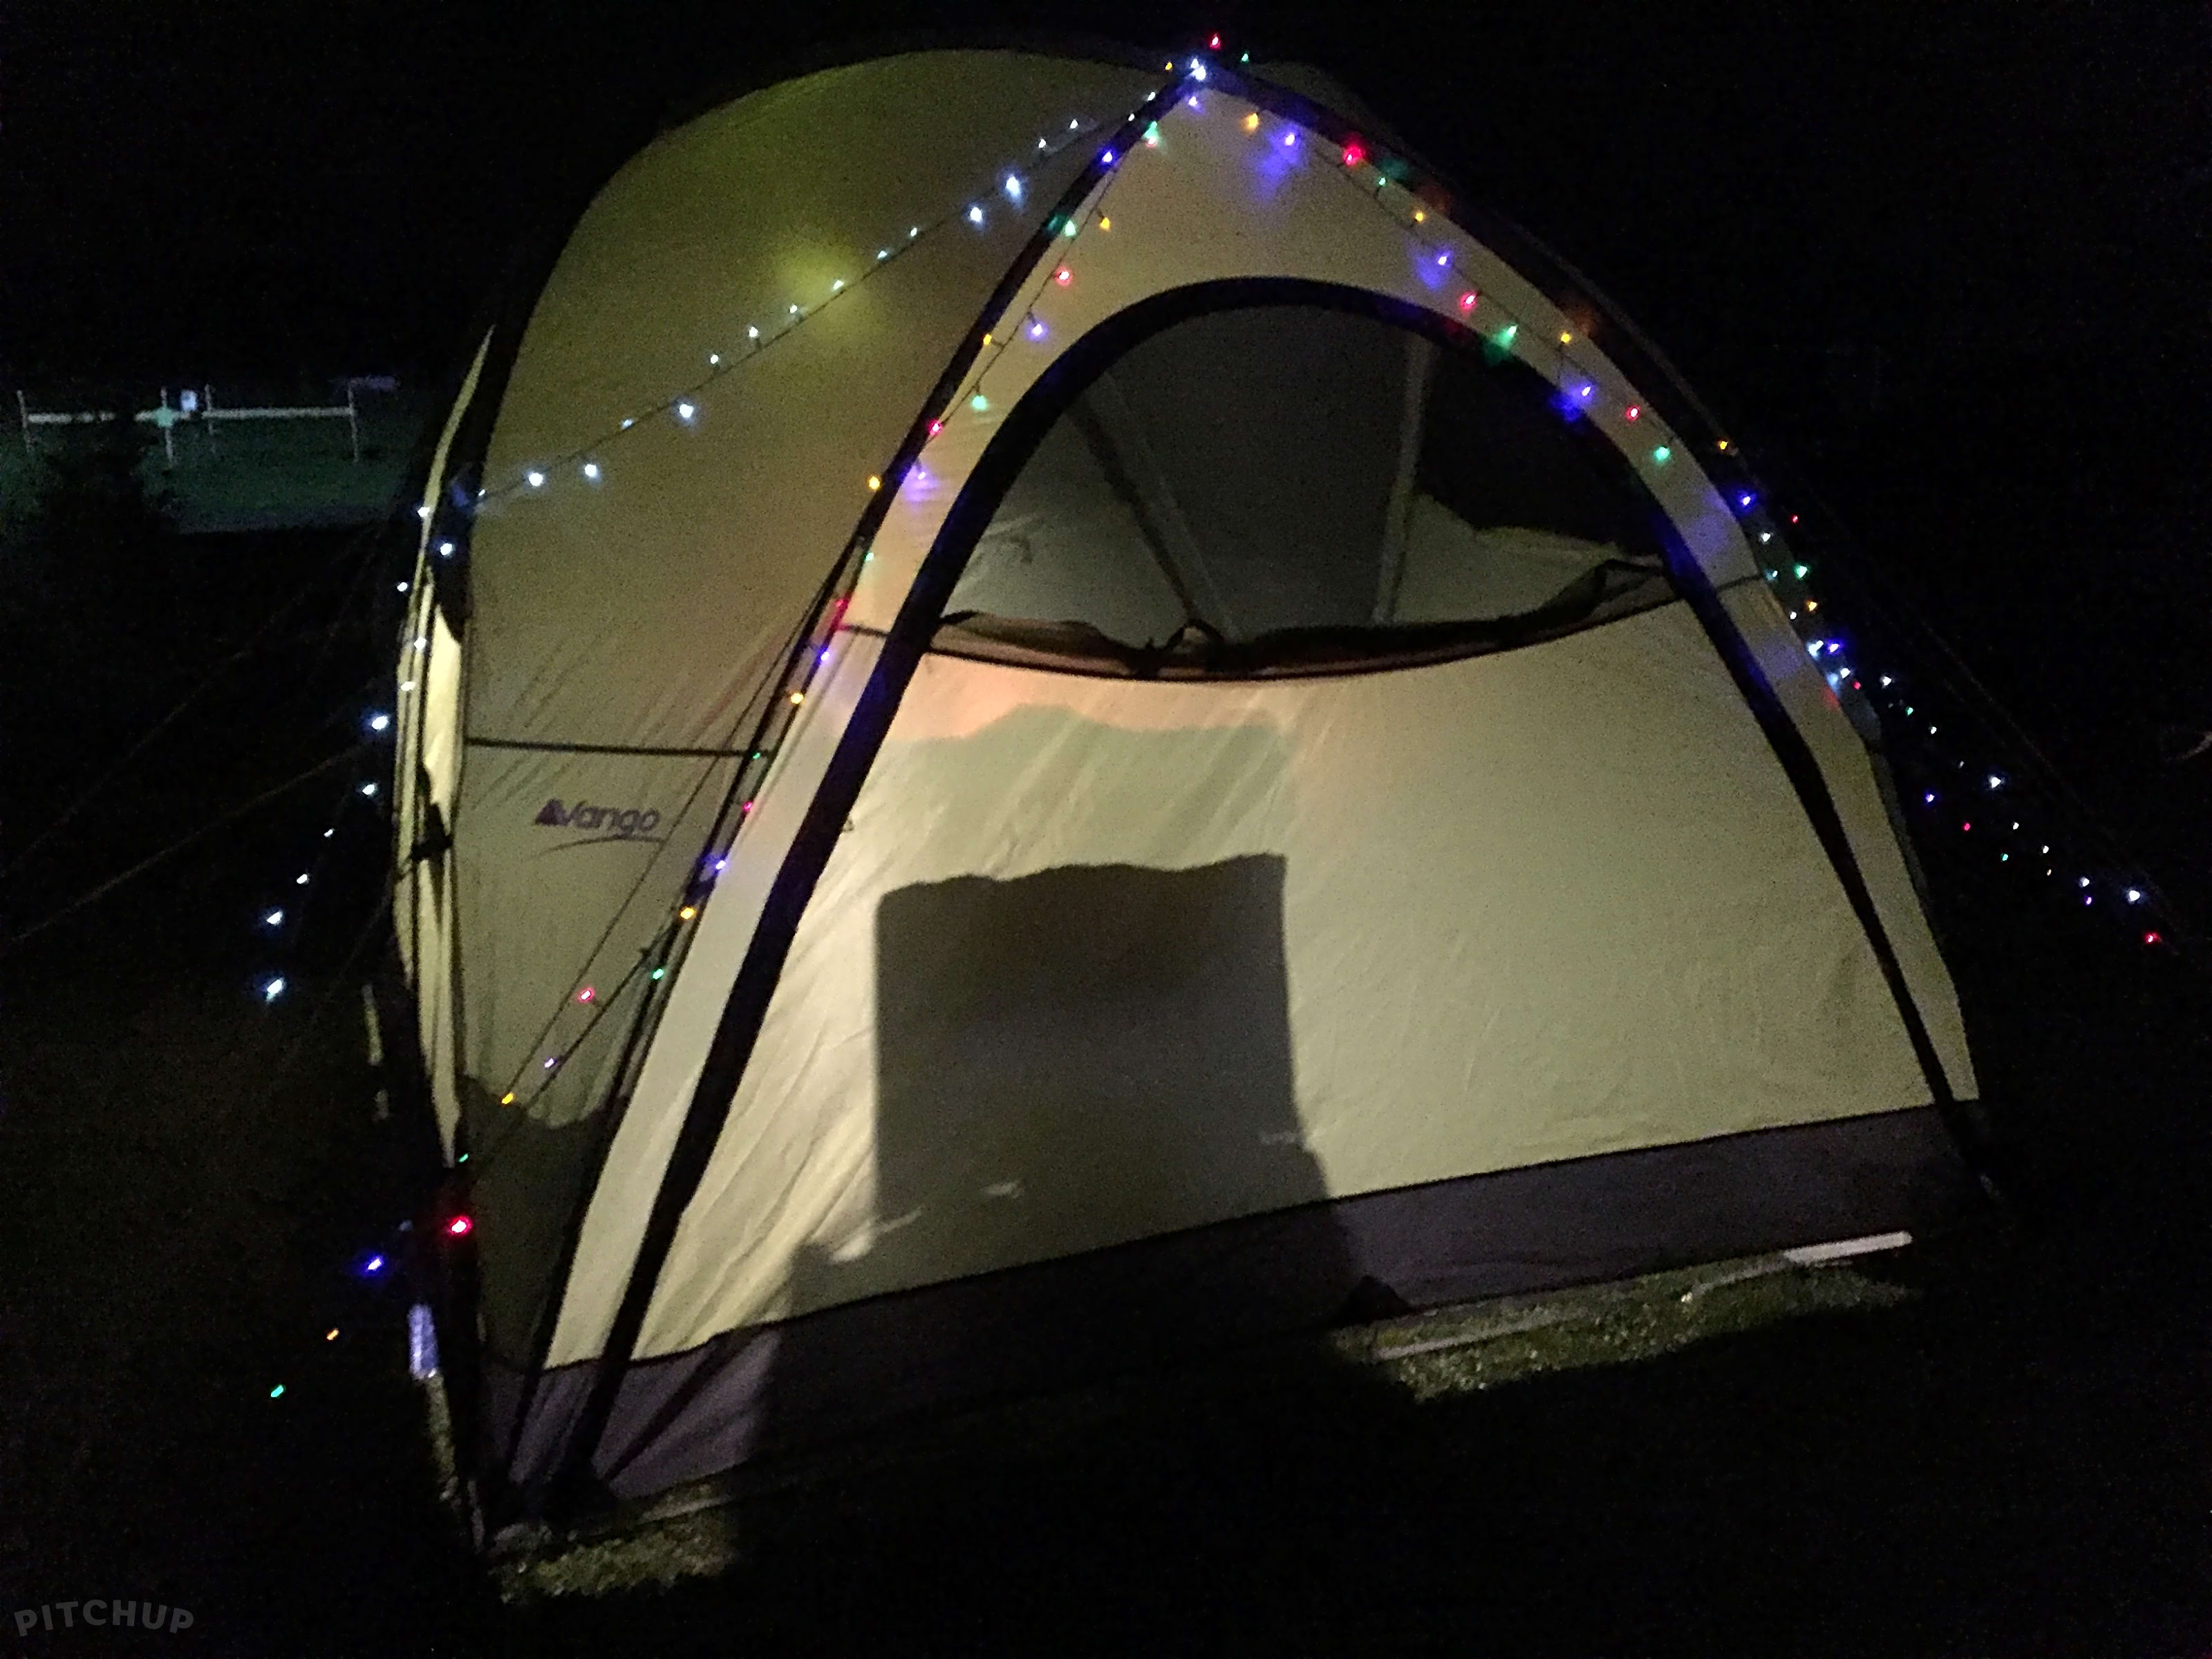 Tents For Sale in Bury St Edmunds